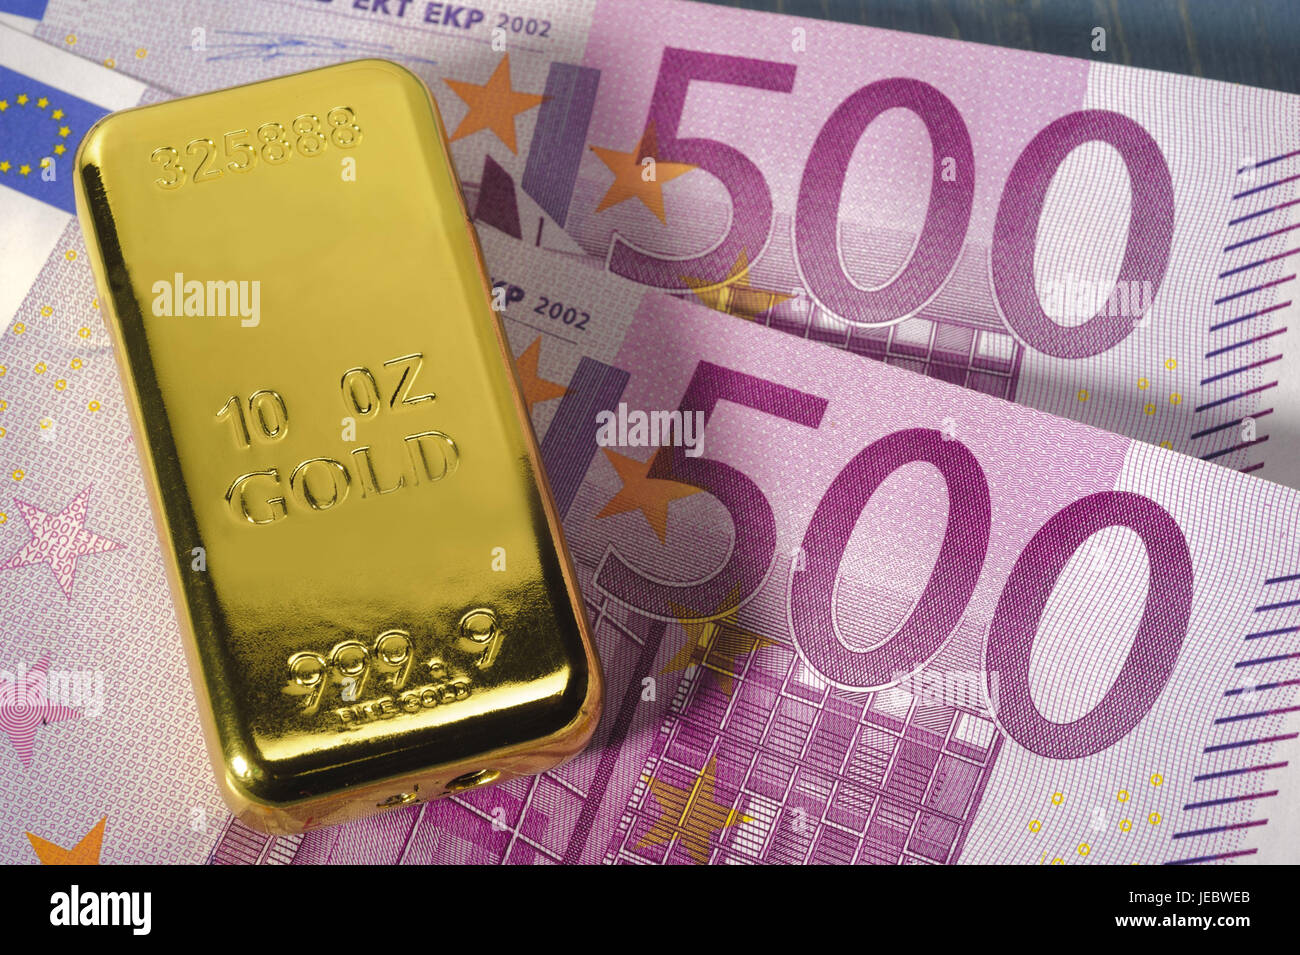 Gold bars, banknotes, golden price, bank, bank notes, cash, income, euro, euronotes, finances, money, stocks, numbers, - Stock Image